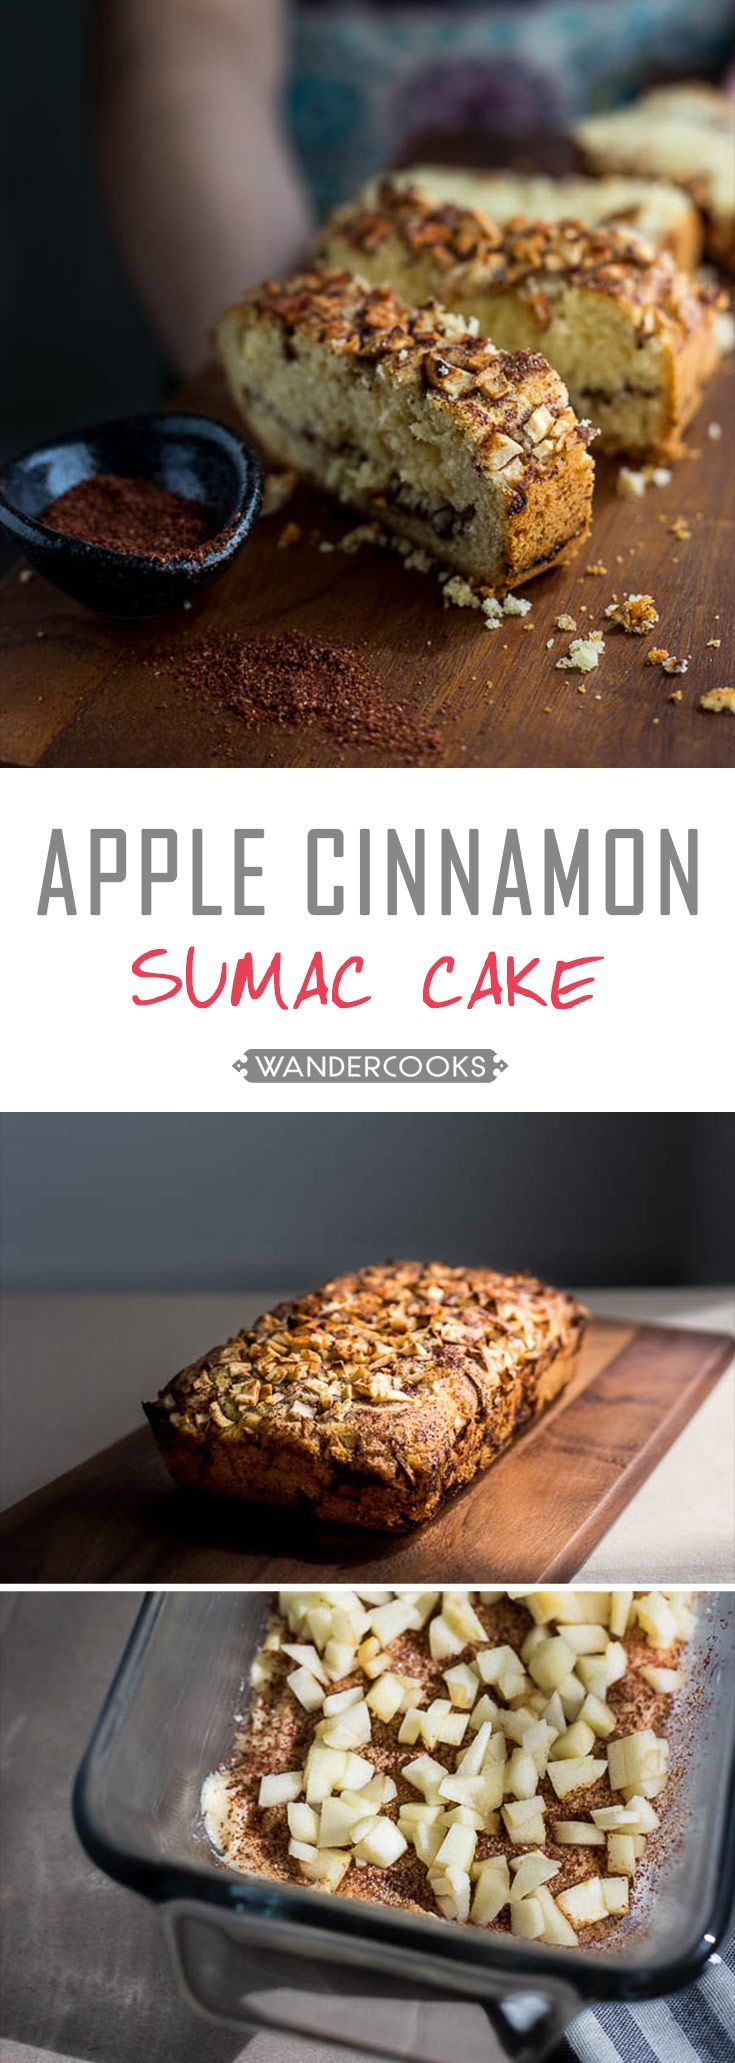 Spiced Apple Cinnamon Sumac Cake - Inspired by a Bulgarian dessert, sumac and apple are the PERFECT pair in this sweet baked treat. Vegetarian. | wandercooks.com